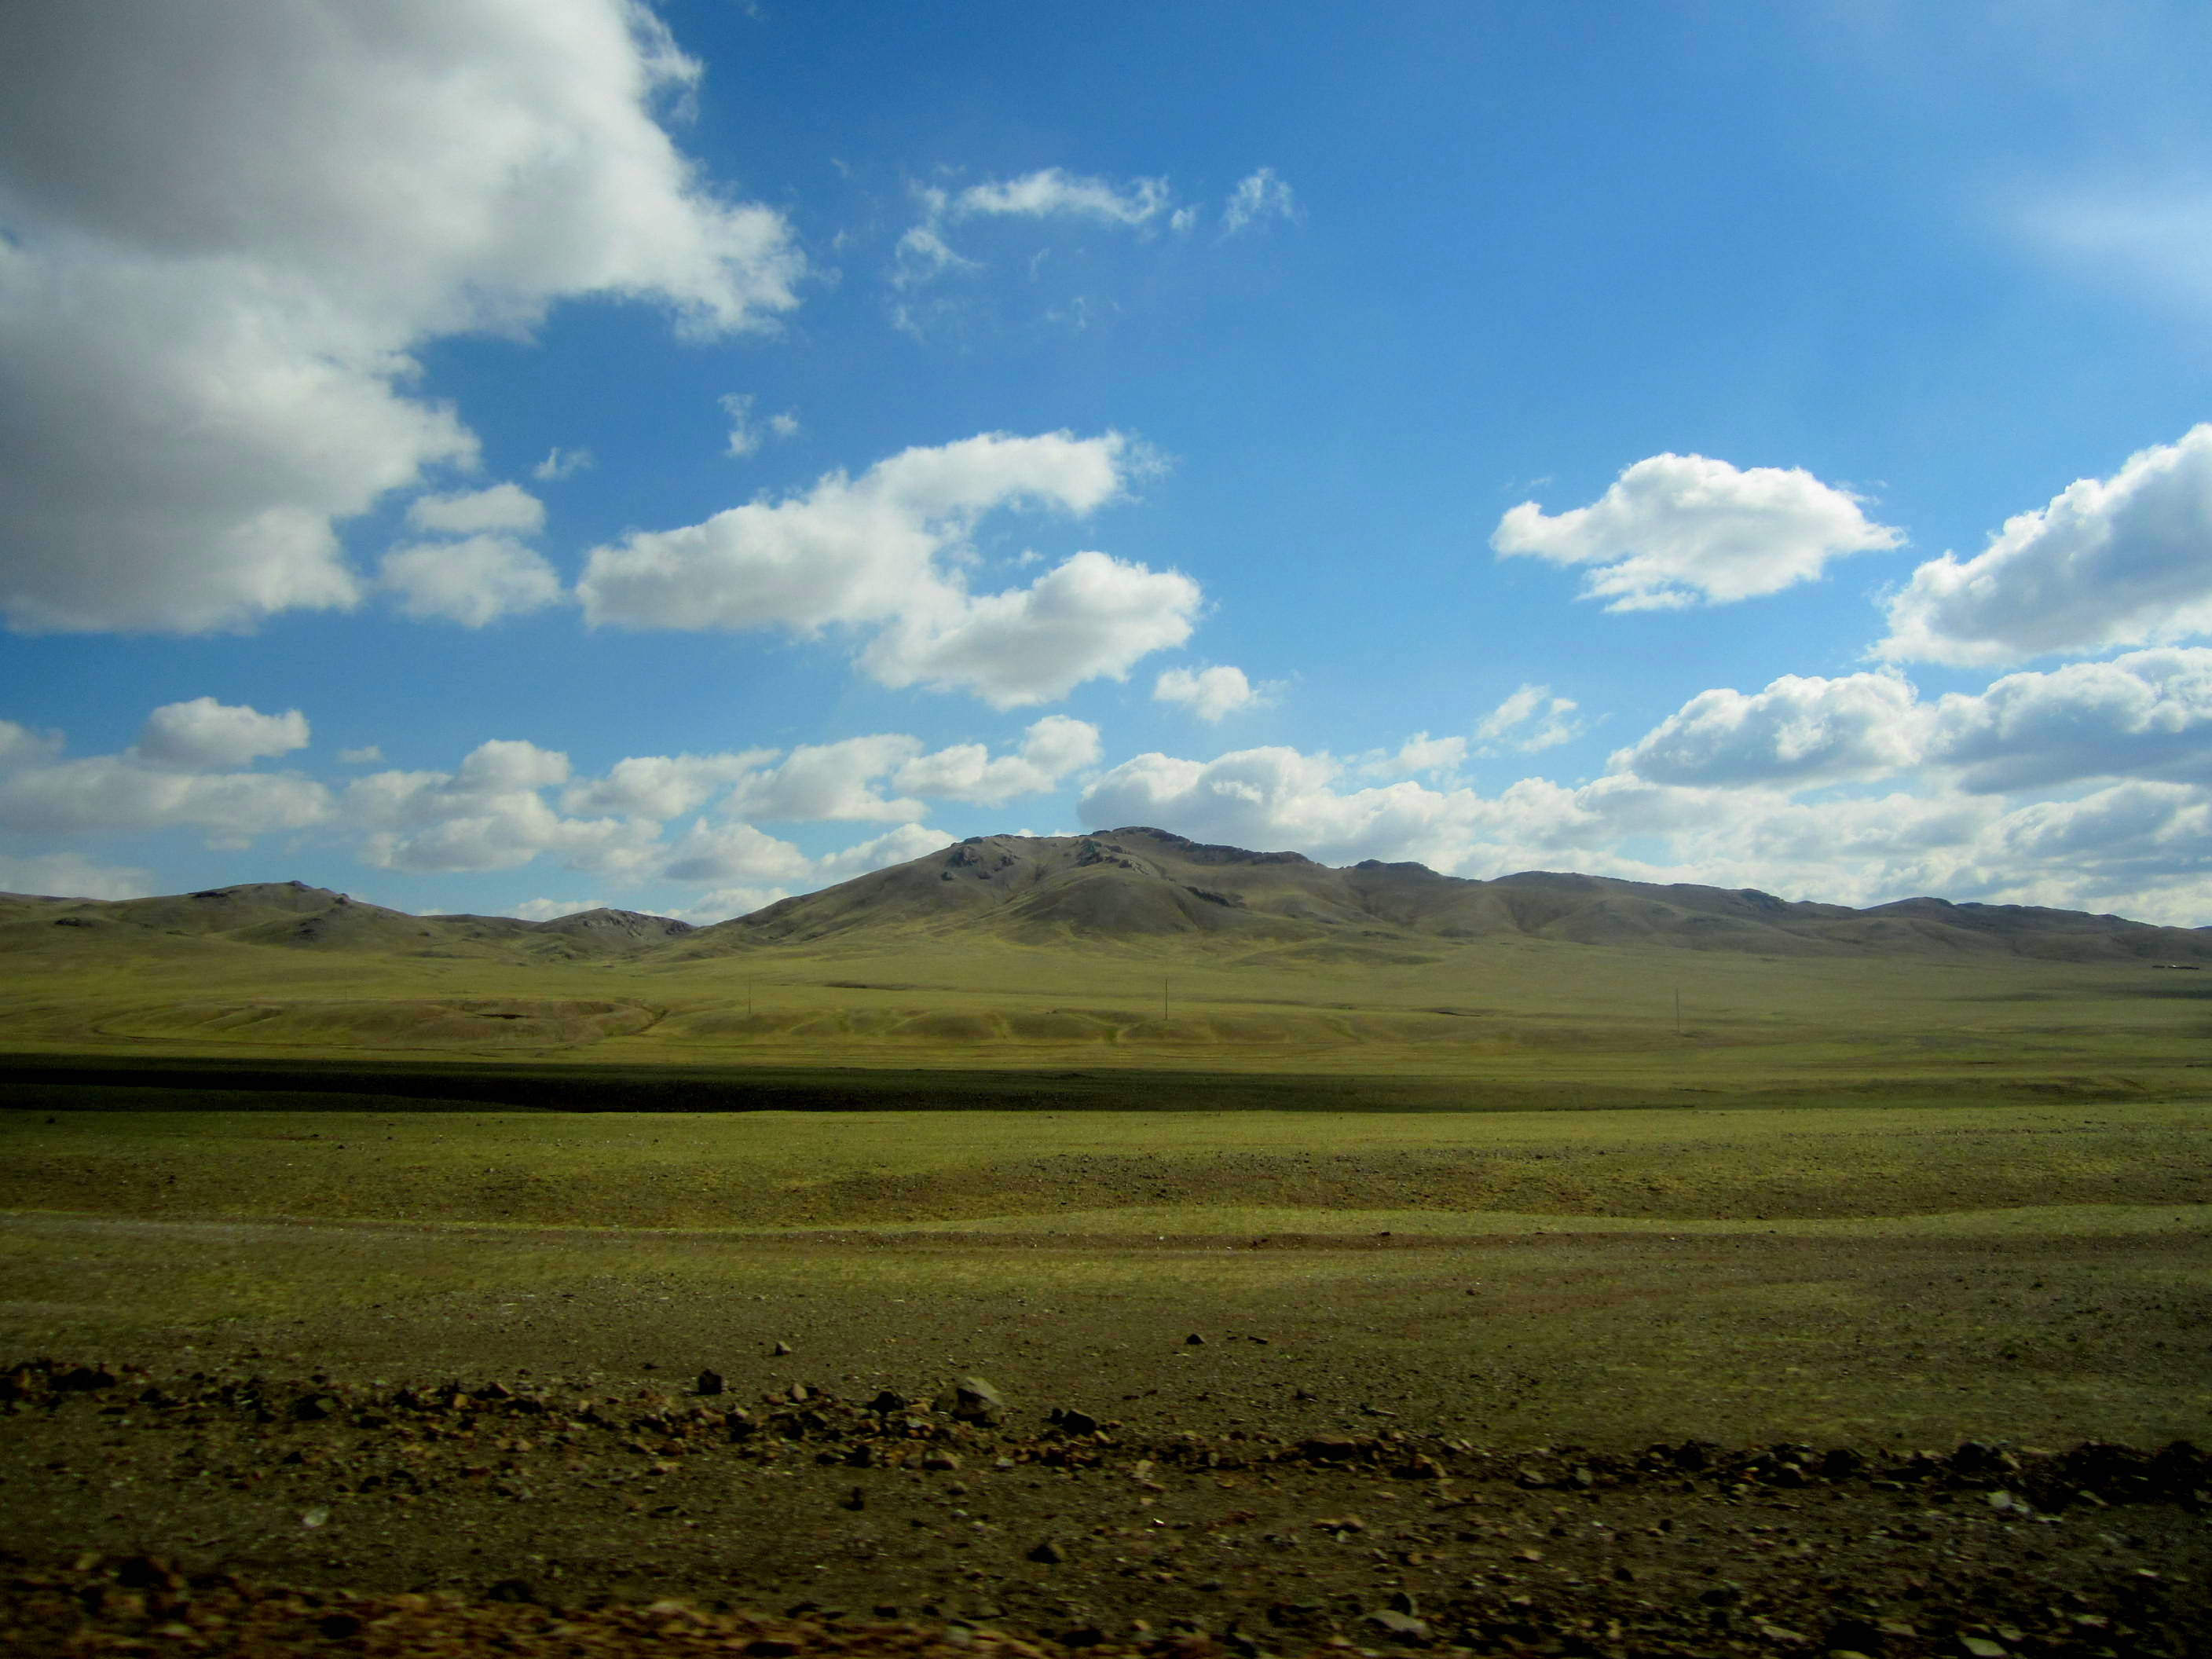 The Mongolian countryside is just wide expanse